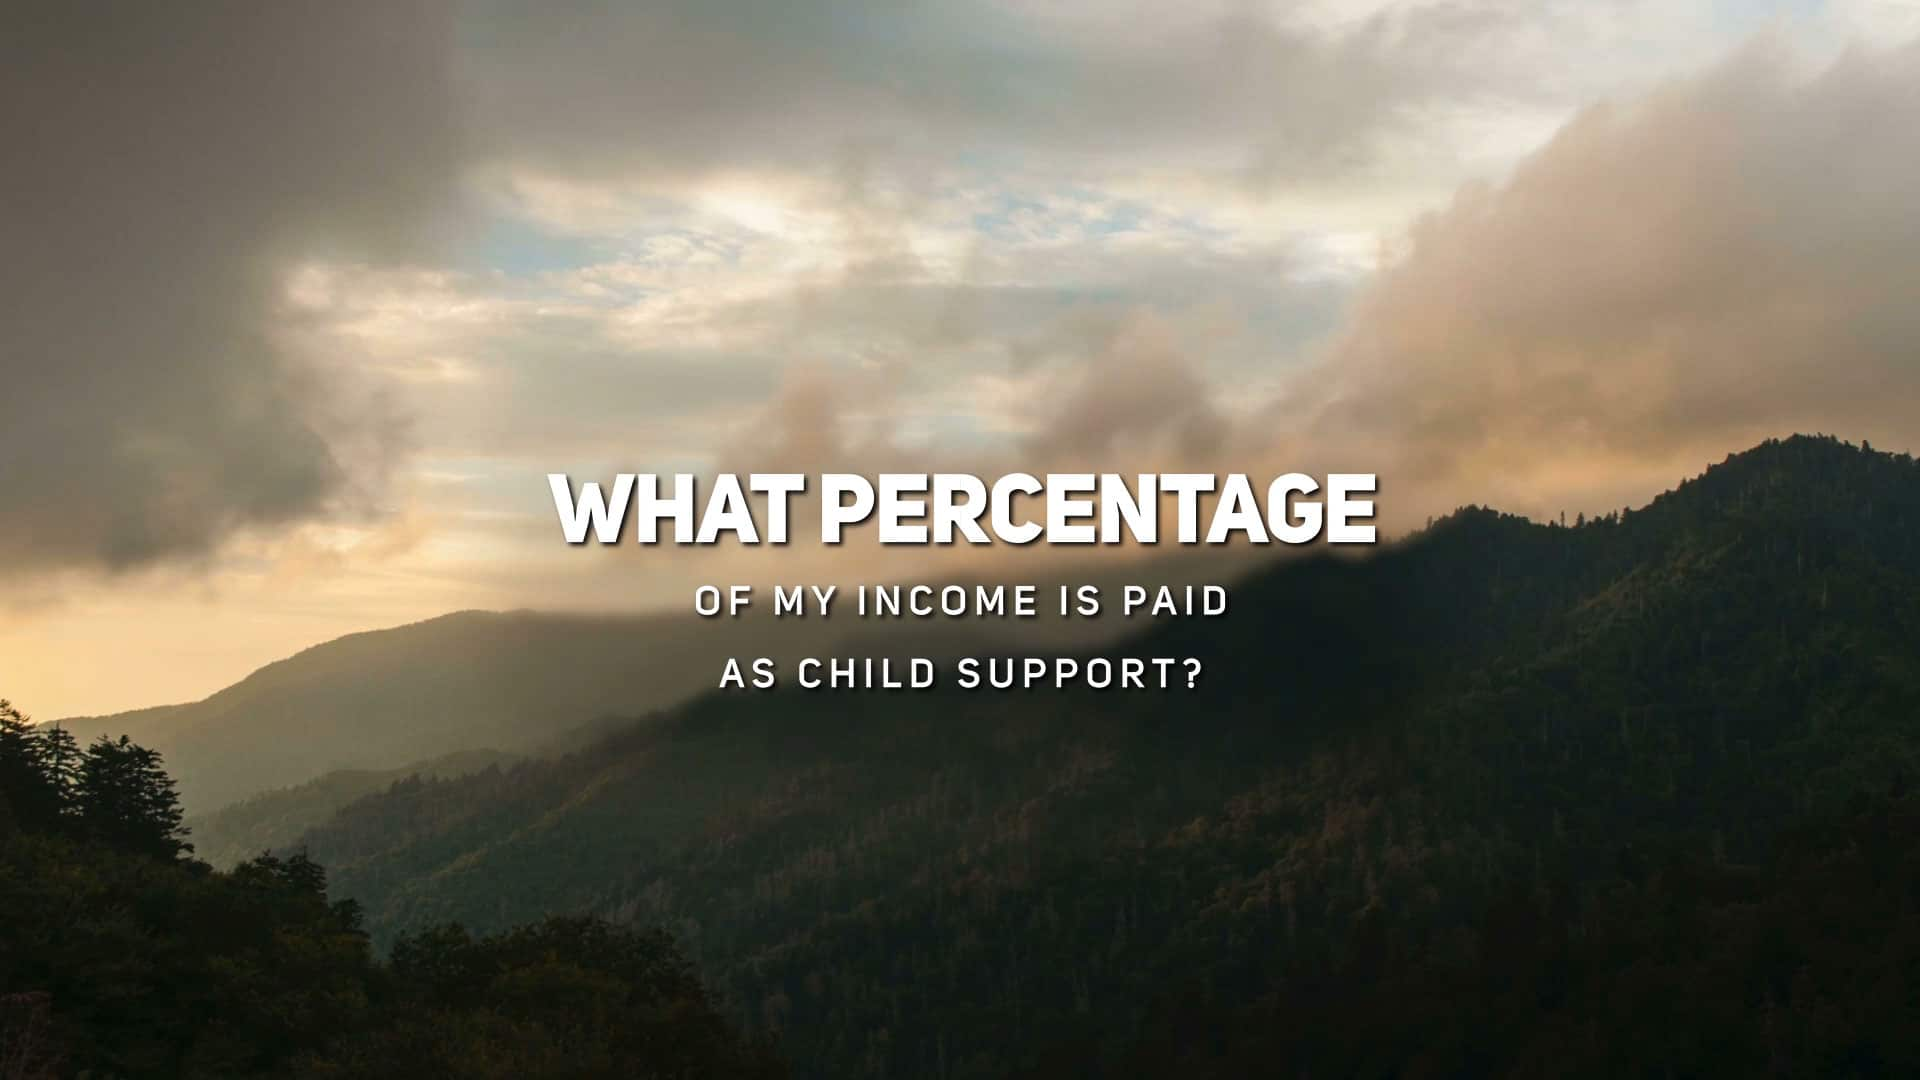 What Percentage of My Income is Paid as Child Support